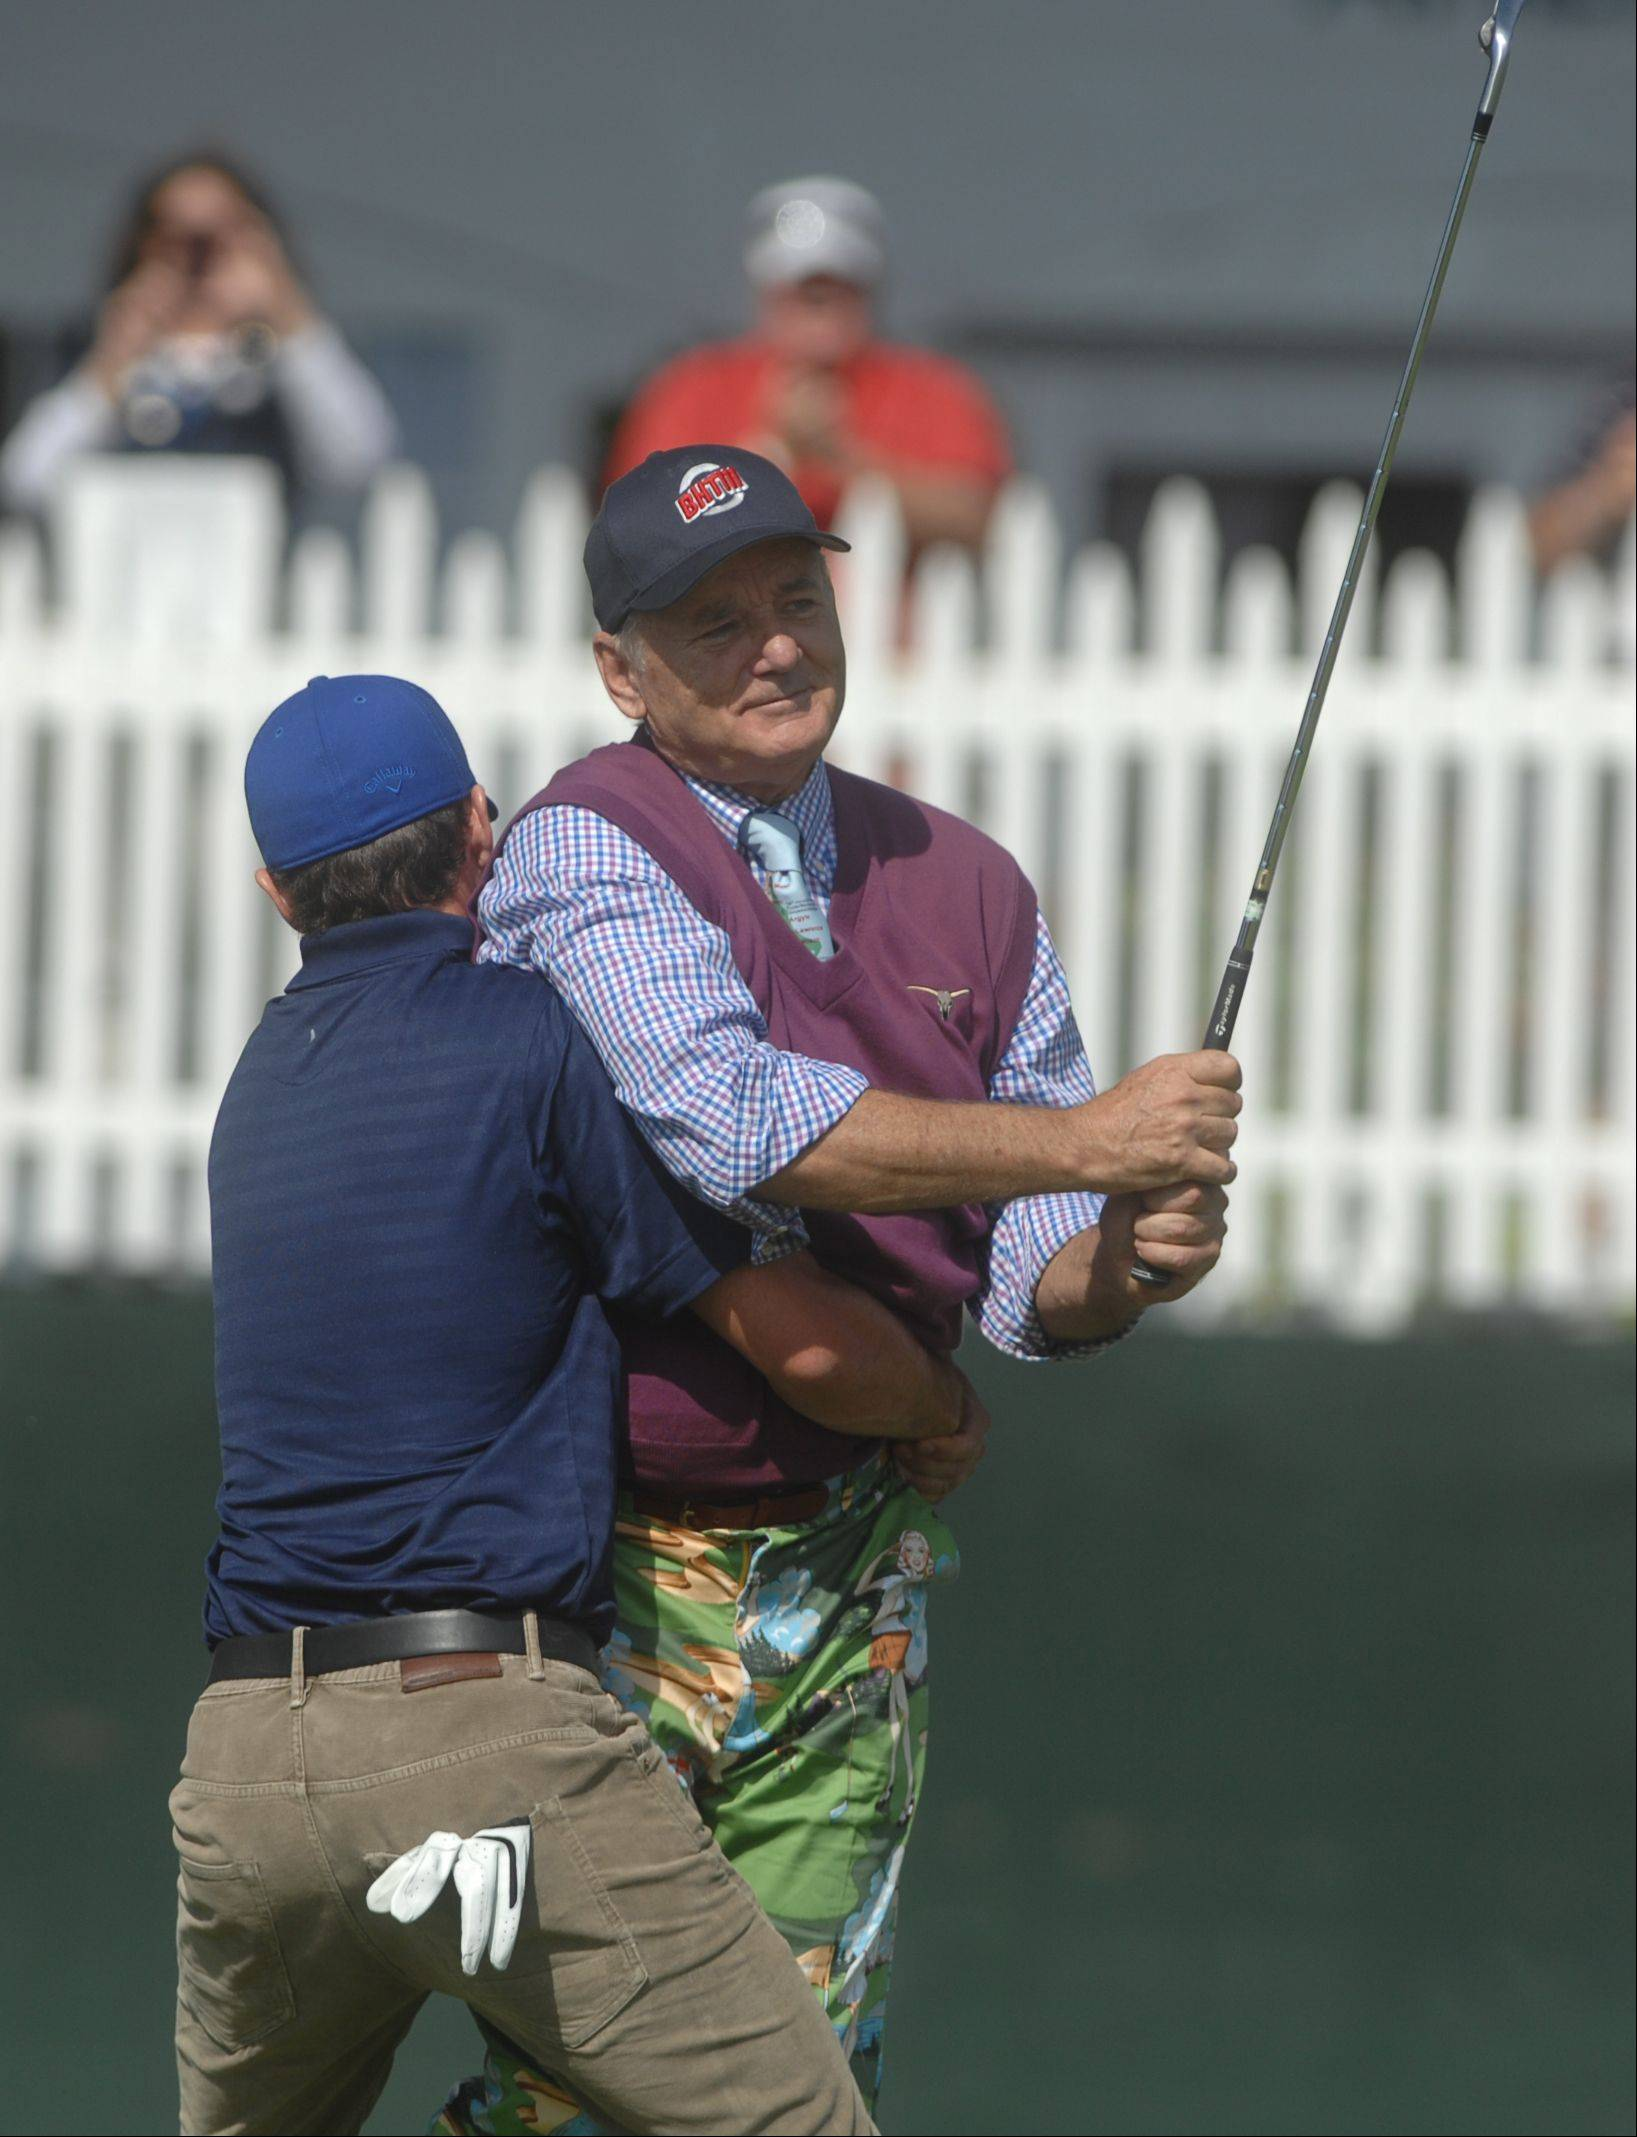 Justin Timberlake lifts Bill Murray up after a putt on the second hole.